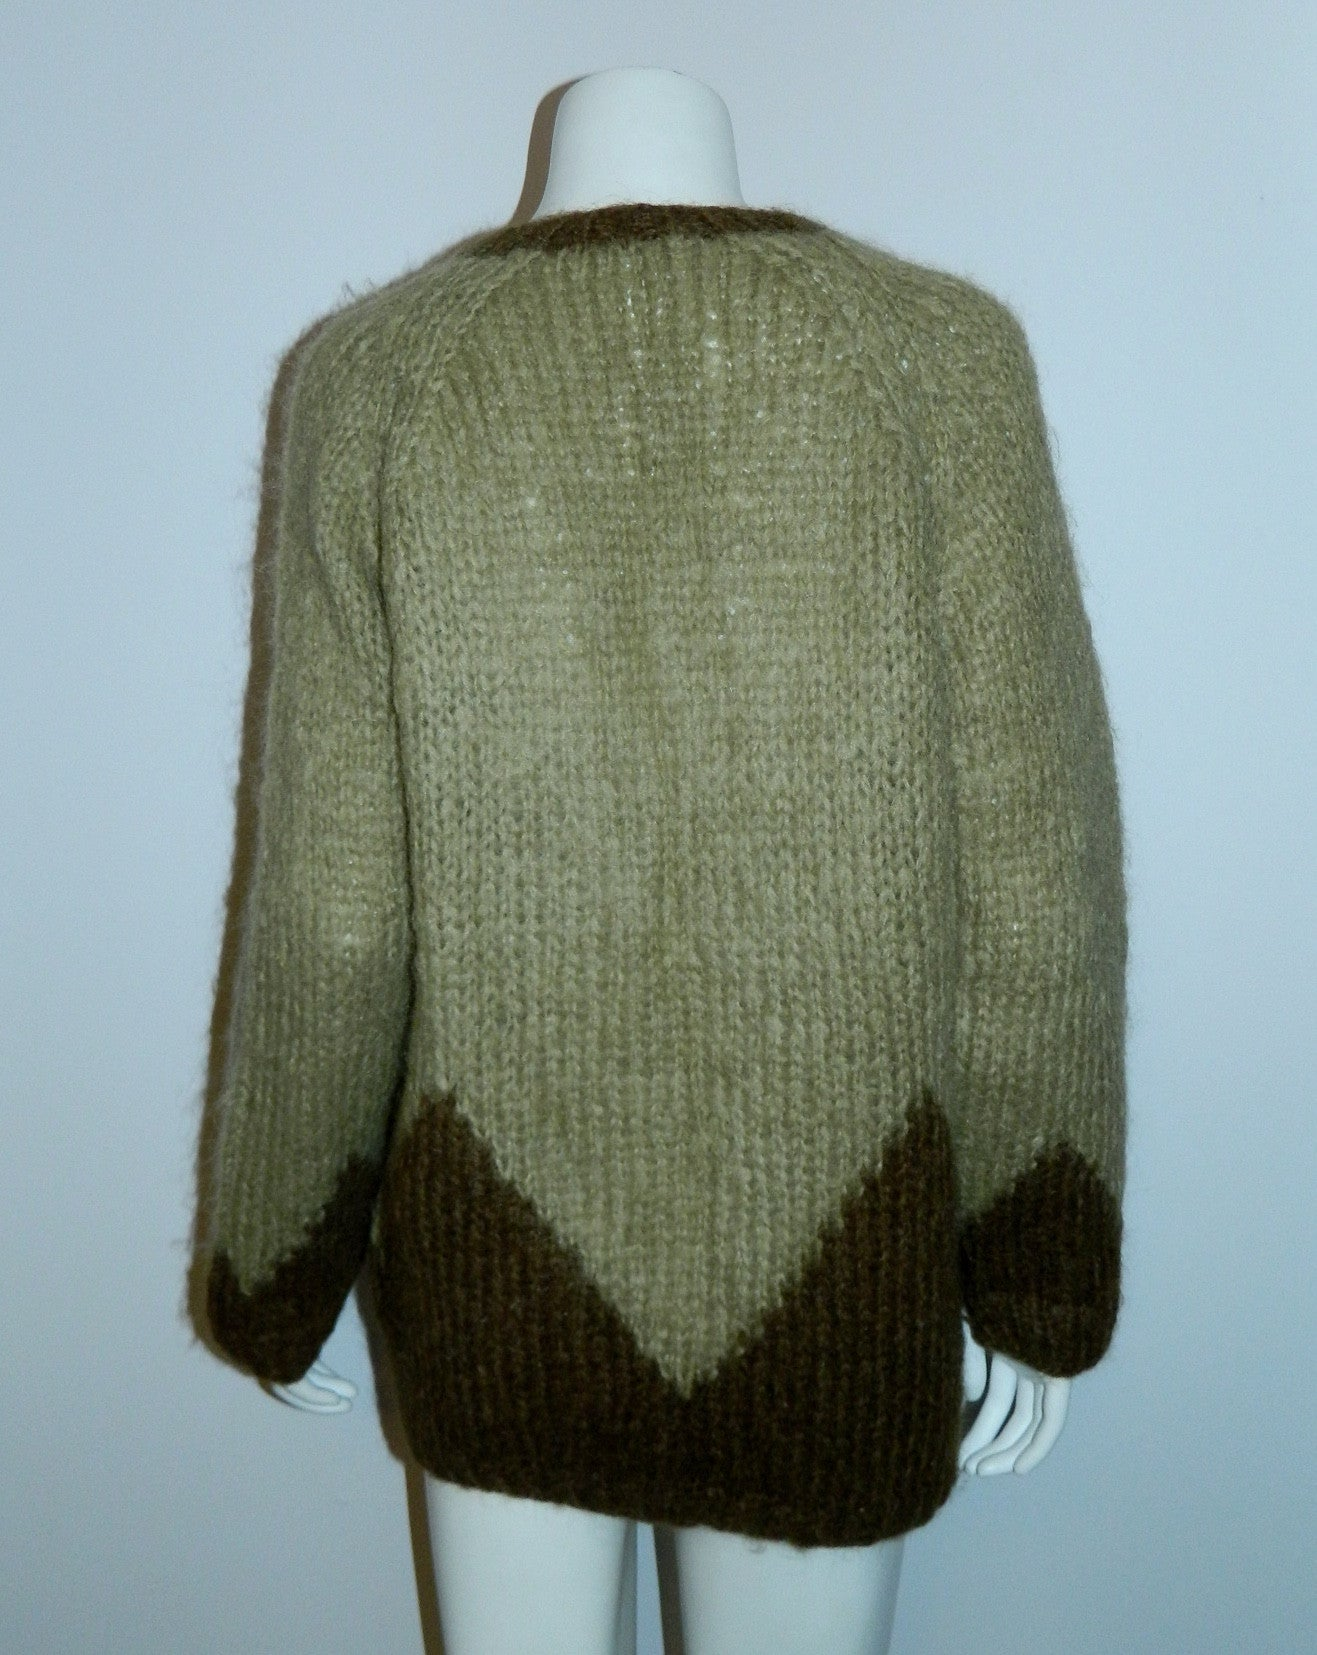 hand knit Italian mohair cardigan sweater 1960s green OS cozy chic